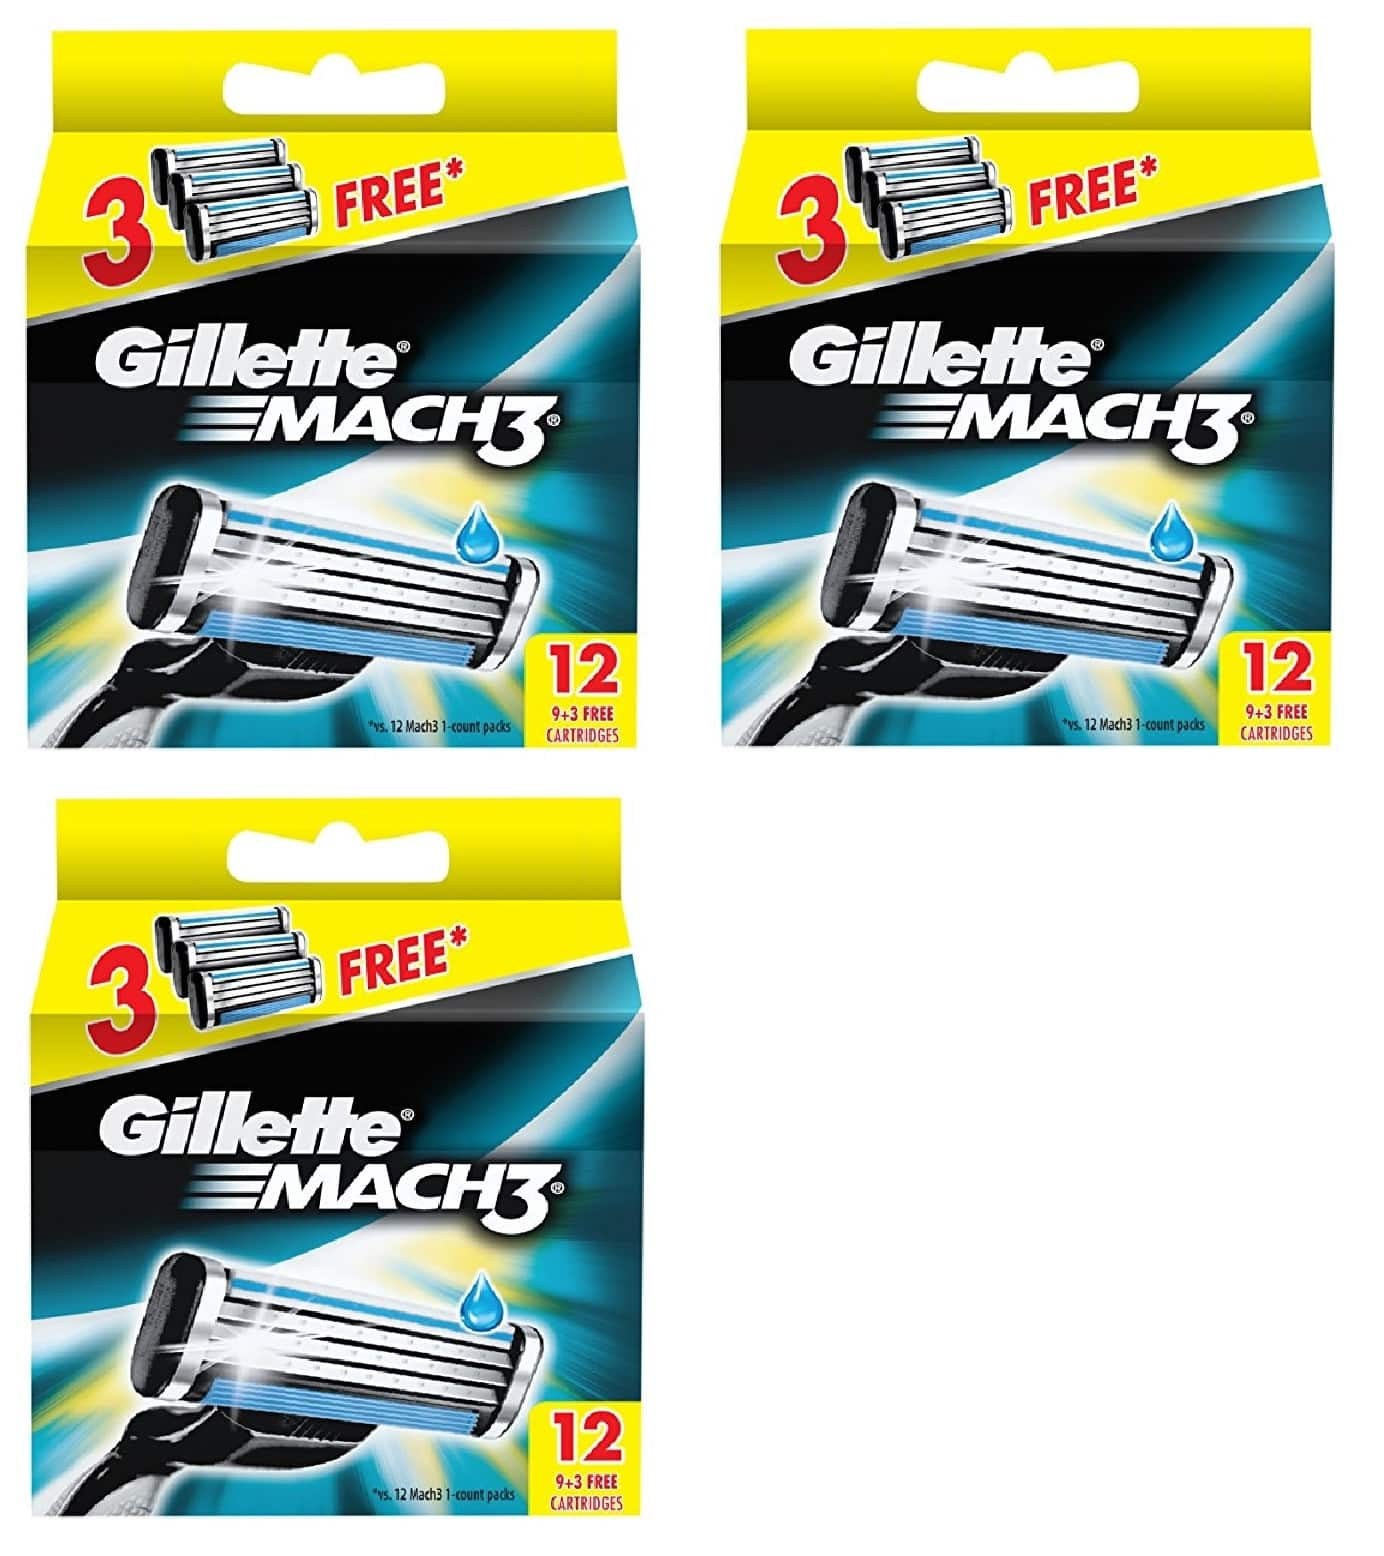 3-Pack of 12-Count Gillette Mach3 Refill Razor Blade Cartridges $26.91